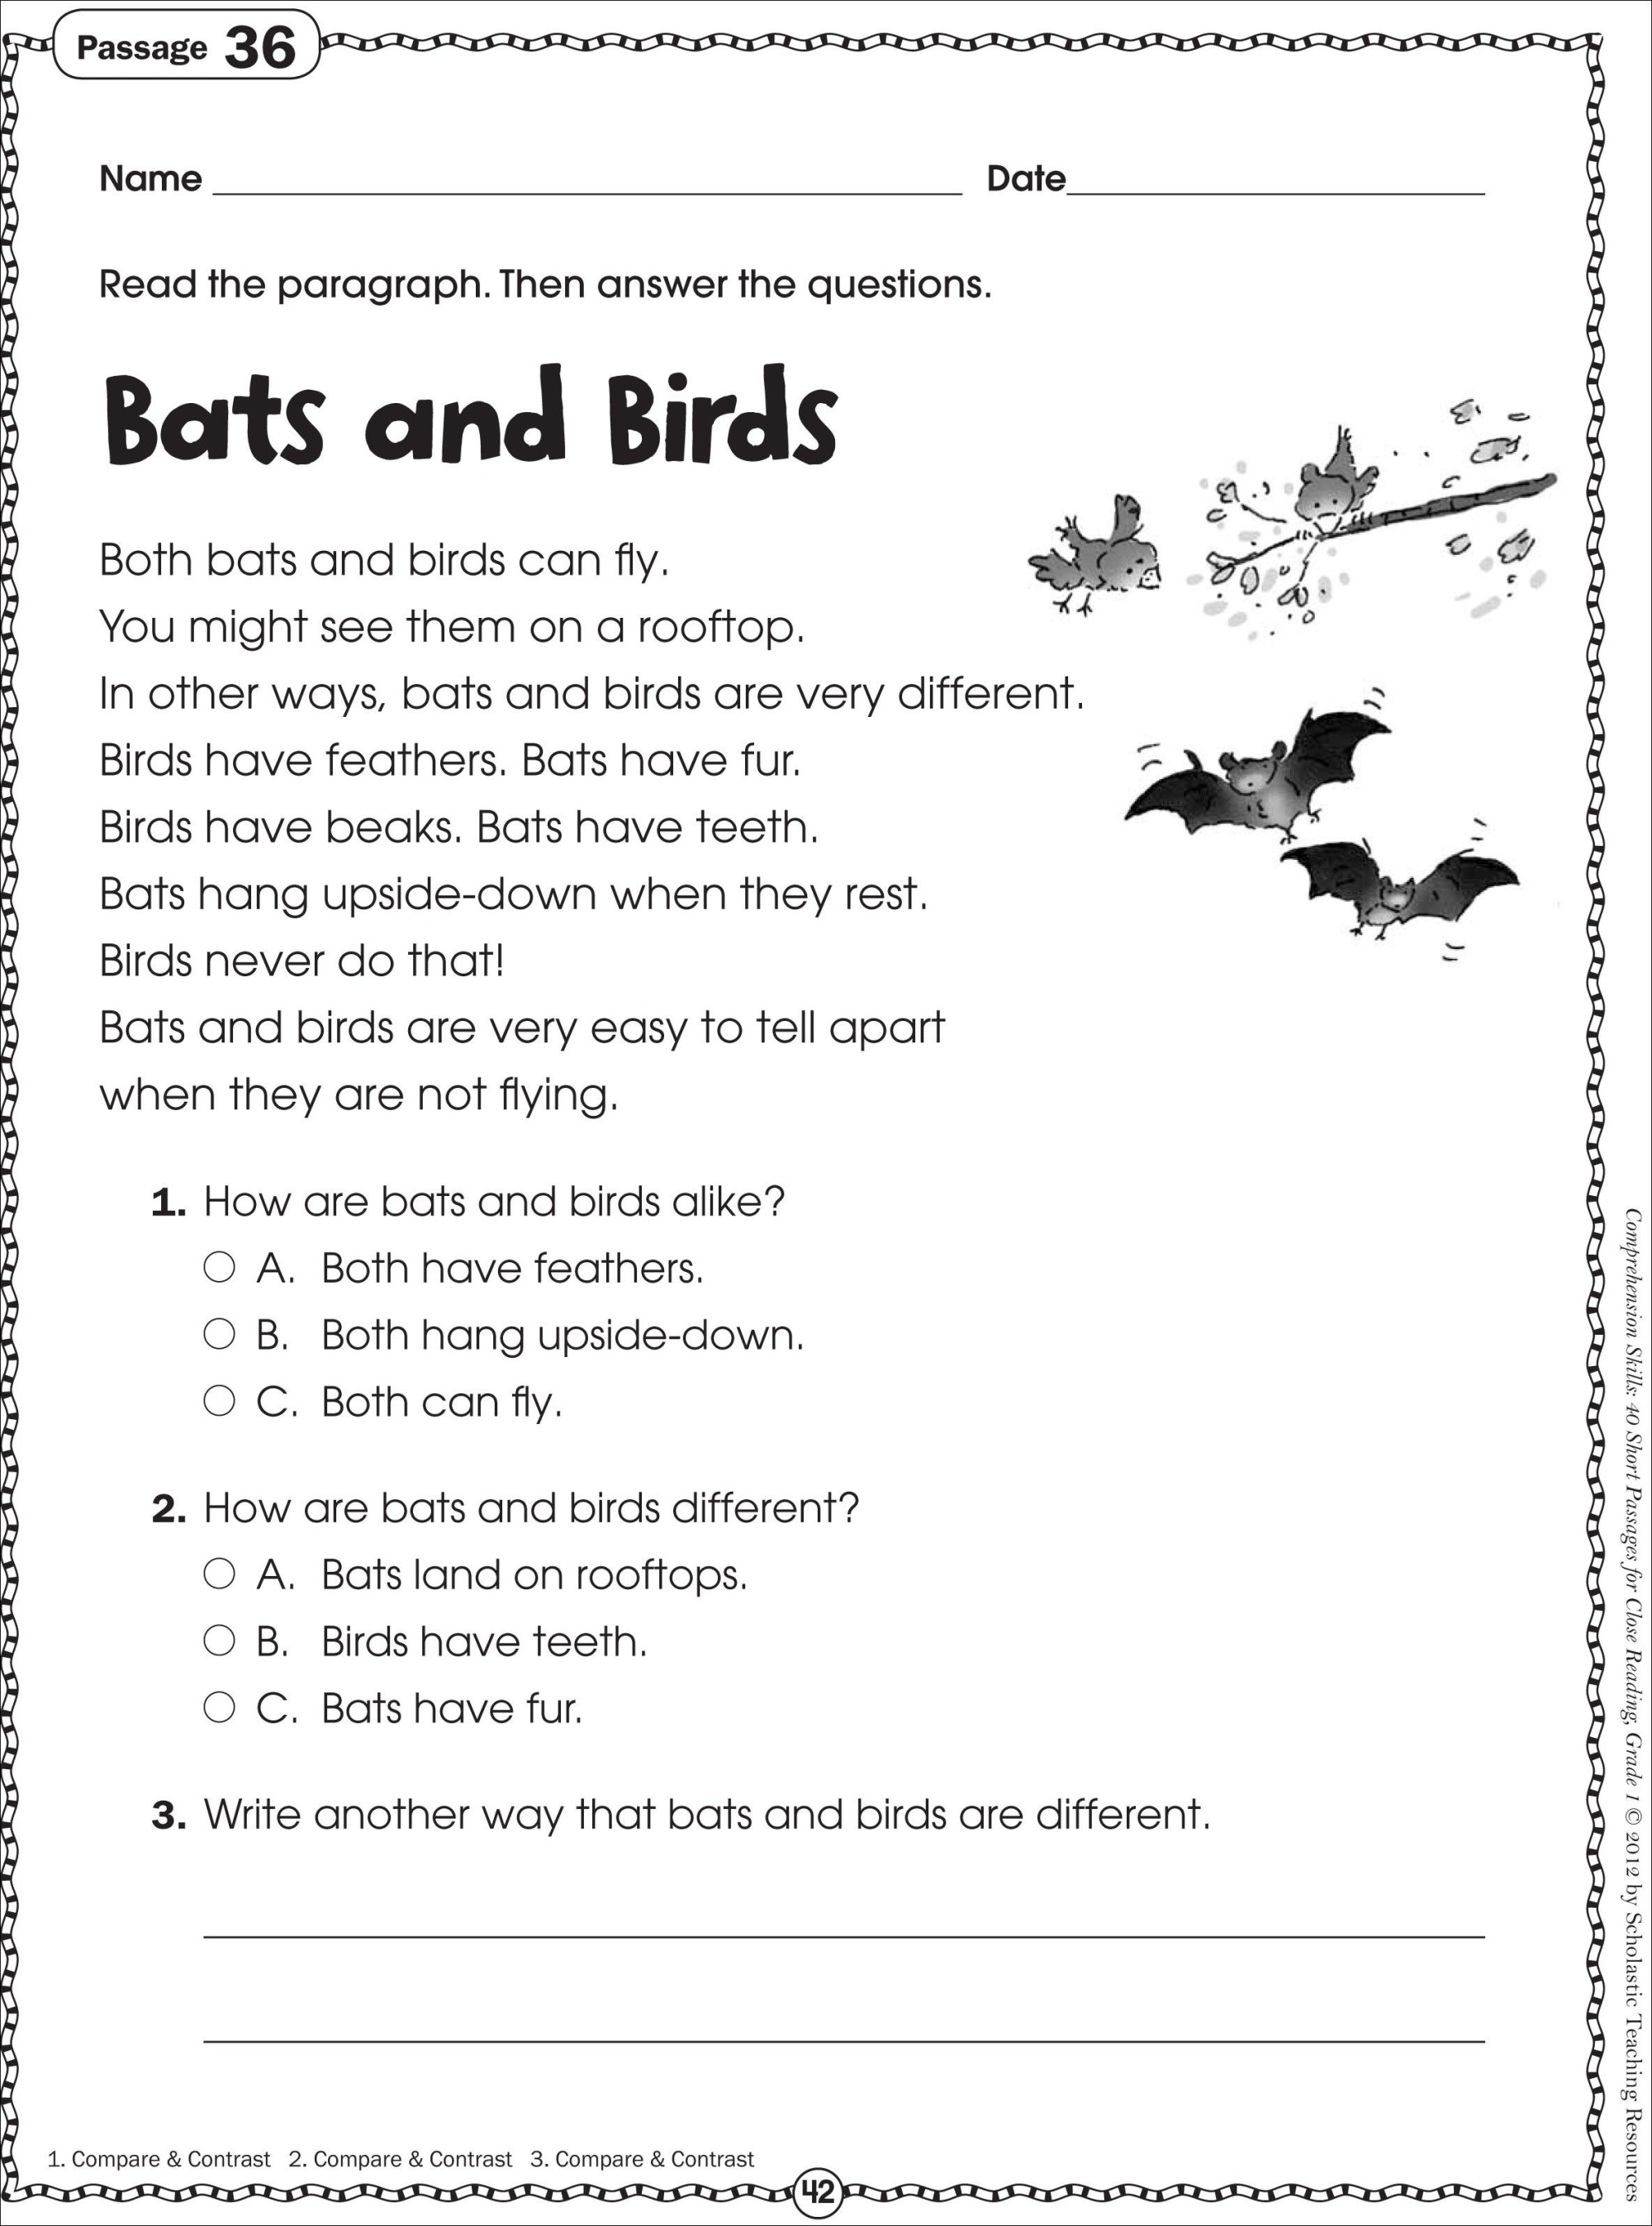 hight resolution of Basic Grade 4 Reading Comprehension Worksheet   Printable Worksheets and  Activities for Teachers